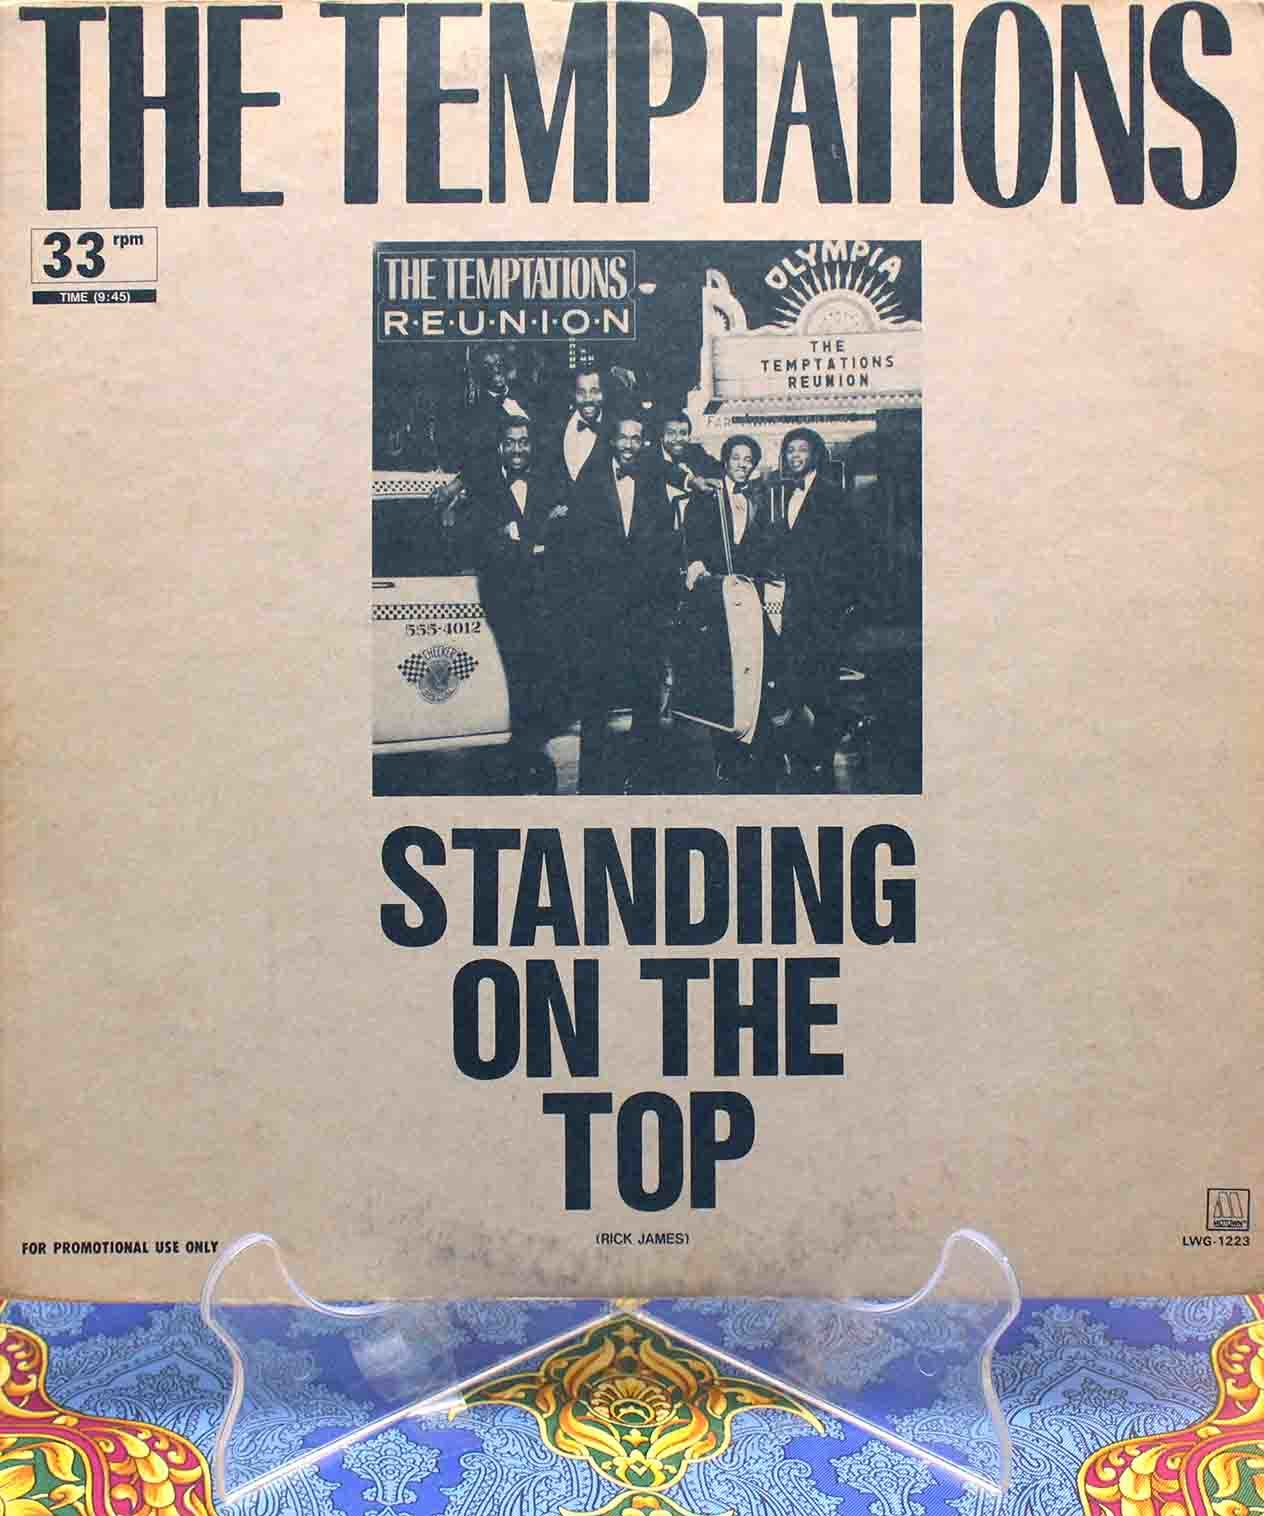 The Temptations - Standing On the Top Japan 12 01